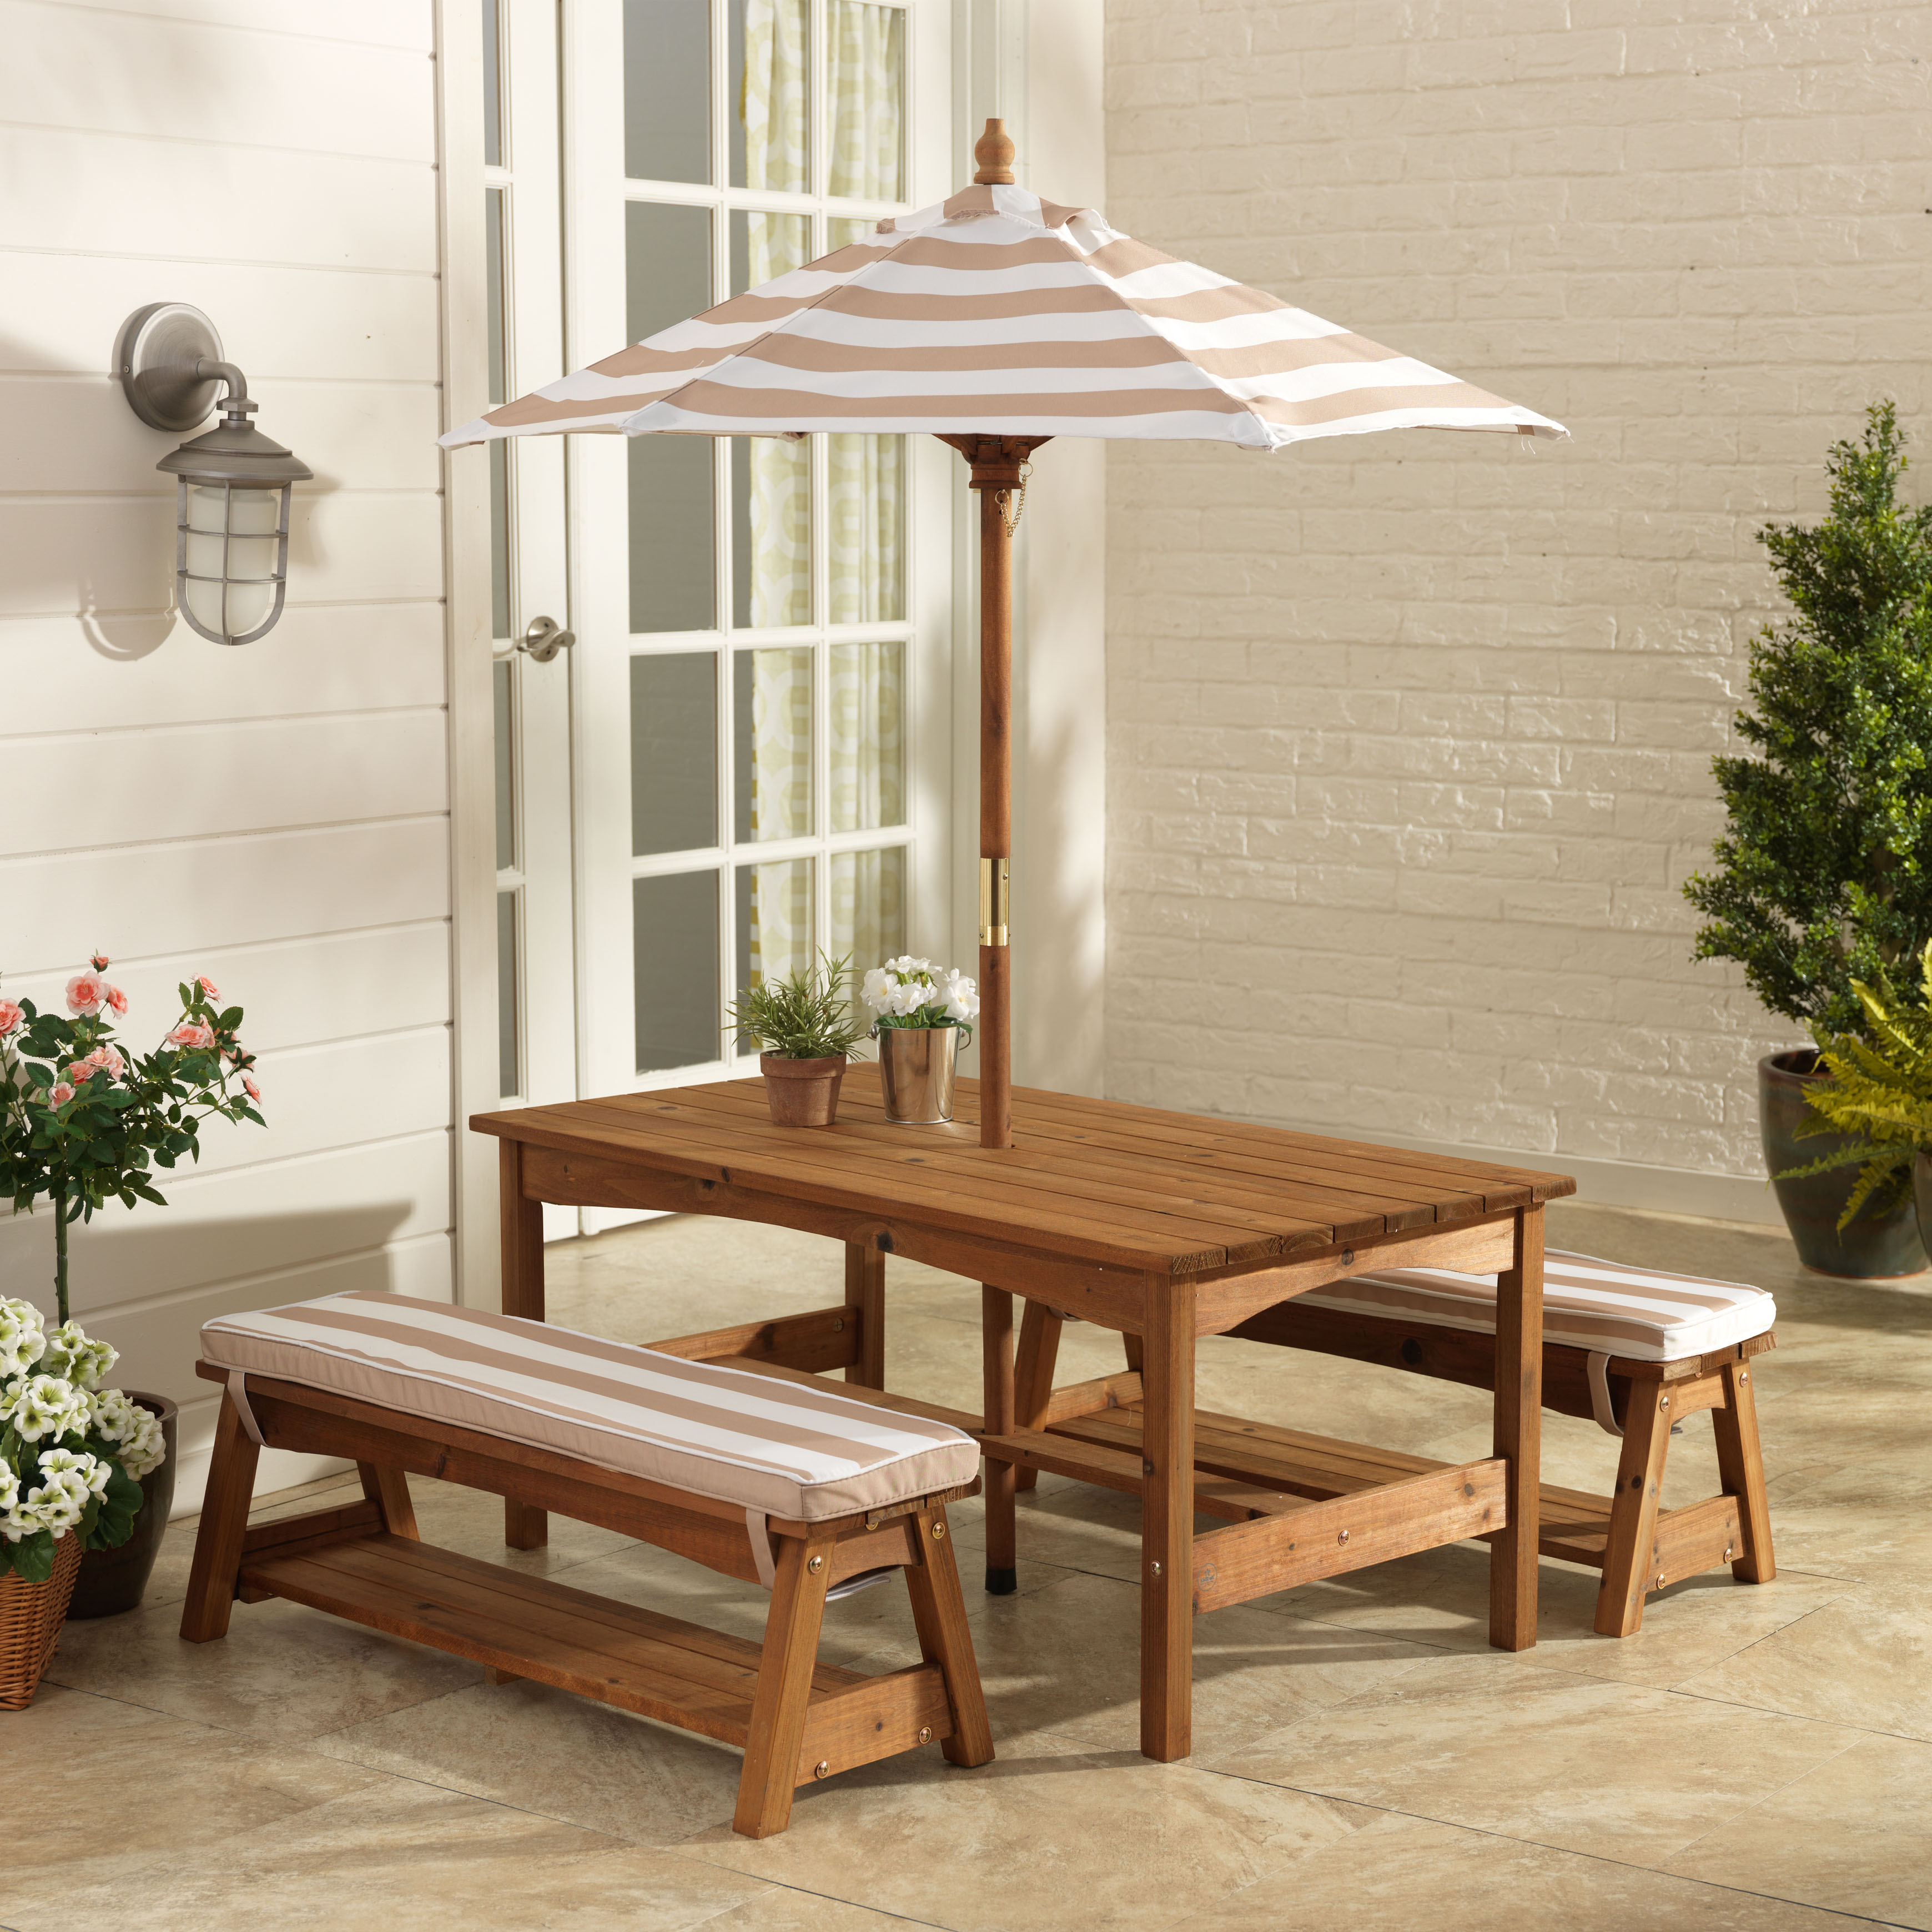 KidKraft Outdoor Table & Bench Set with Cushions & Umbrella Oatmeal & White Stripes by KidKraft